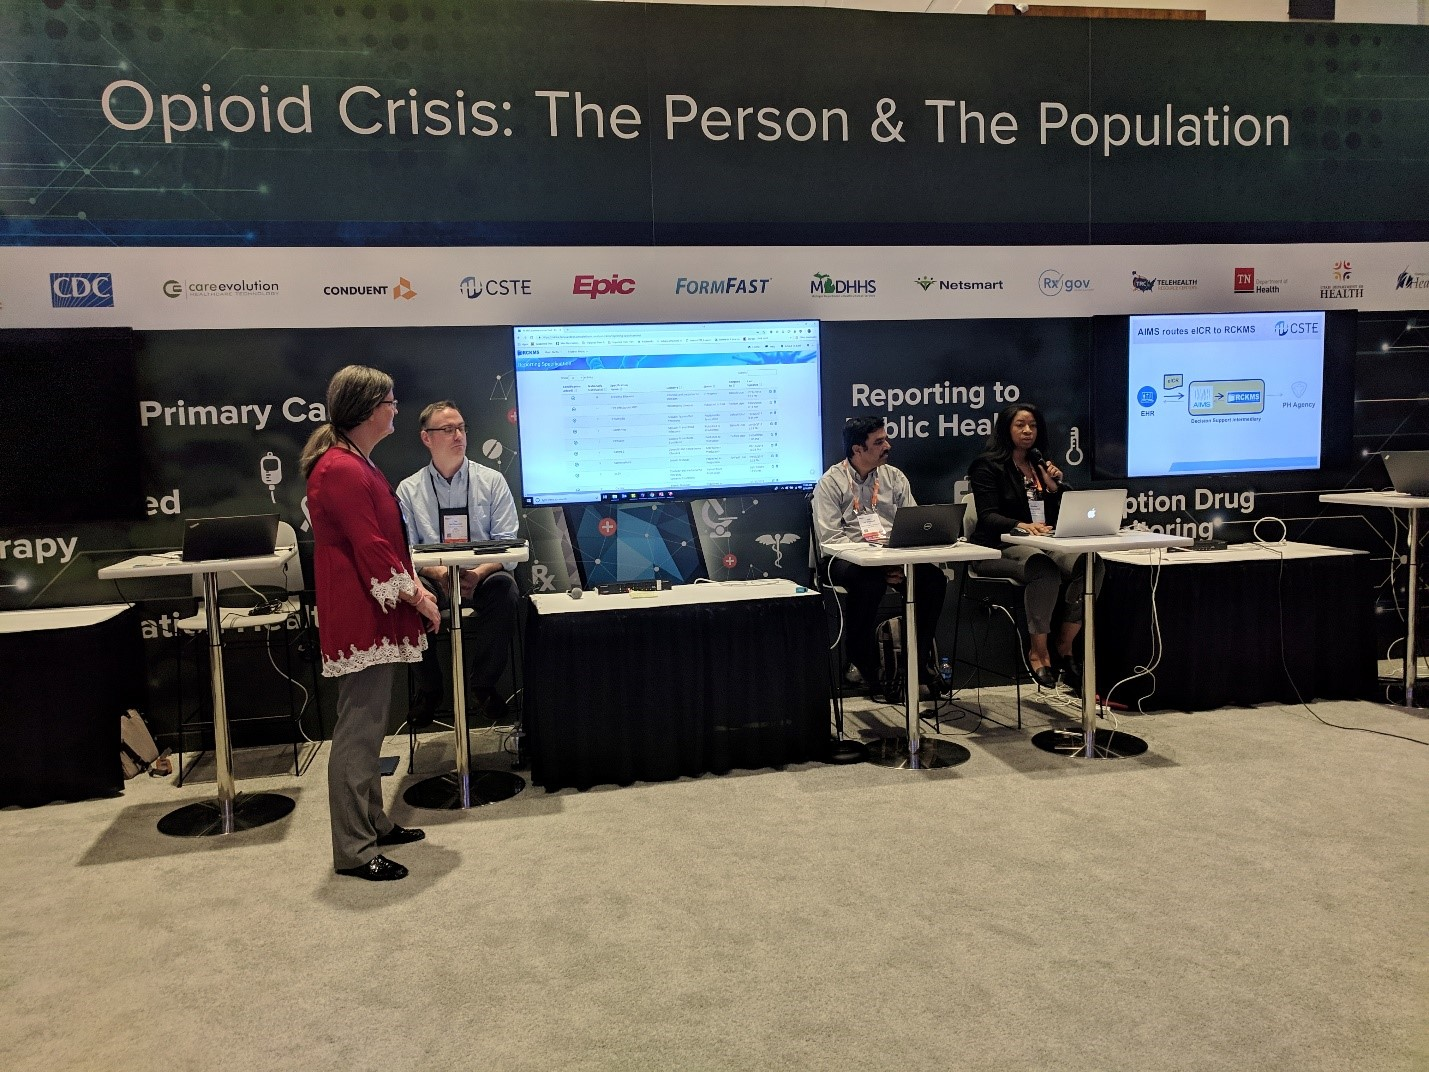 Pictured: Partners demonstrating The Opioid Crisis: The Person and The Population use case at the 2019 HIMSS Global Conference's Interoperability Showcase. From left to right, Laura Conn (CDC), Jim Fitzpatrick (Epic), Sai Valluripalli (APHL) and Charisse LaVell (CSTE).